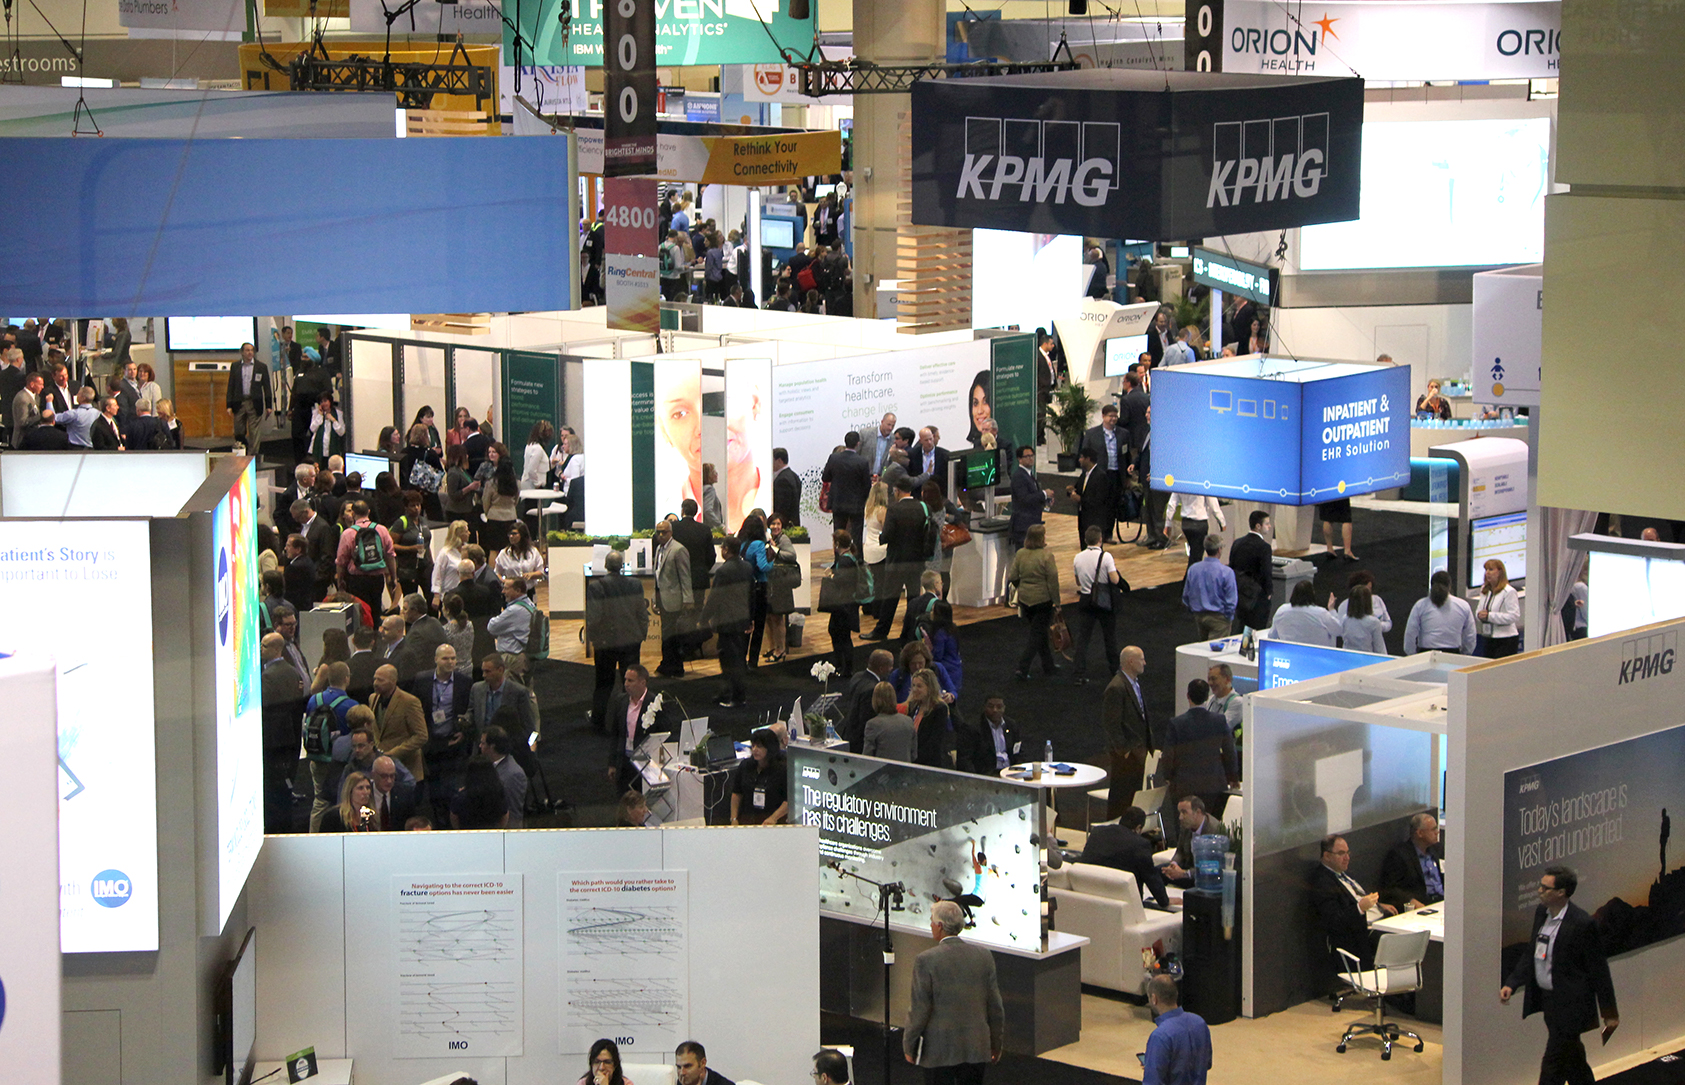 Smart City Shines Behind the Scenes at Annual HIMSS Conference